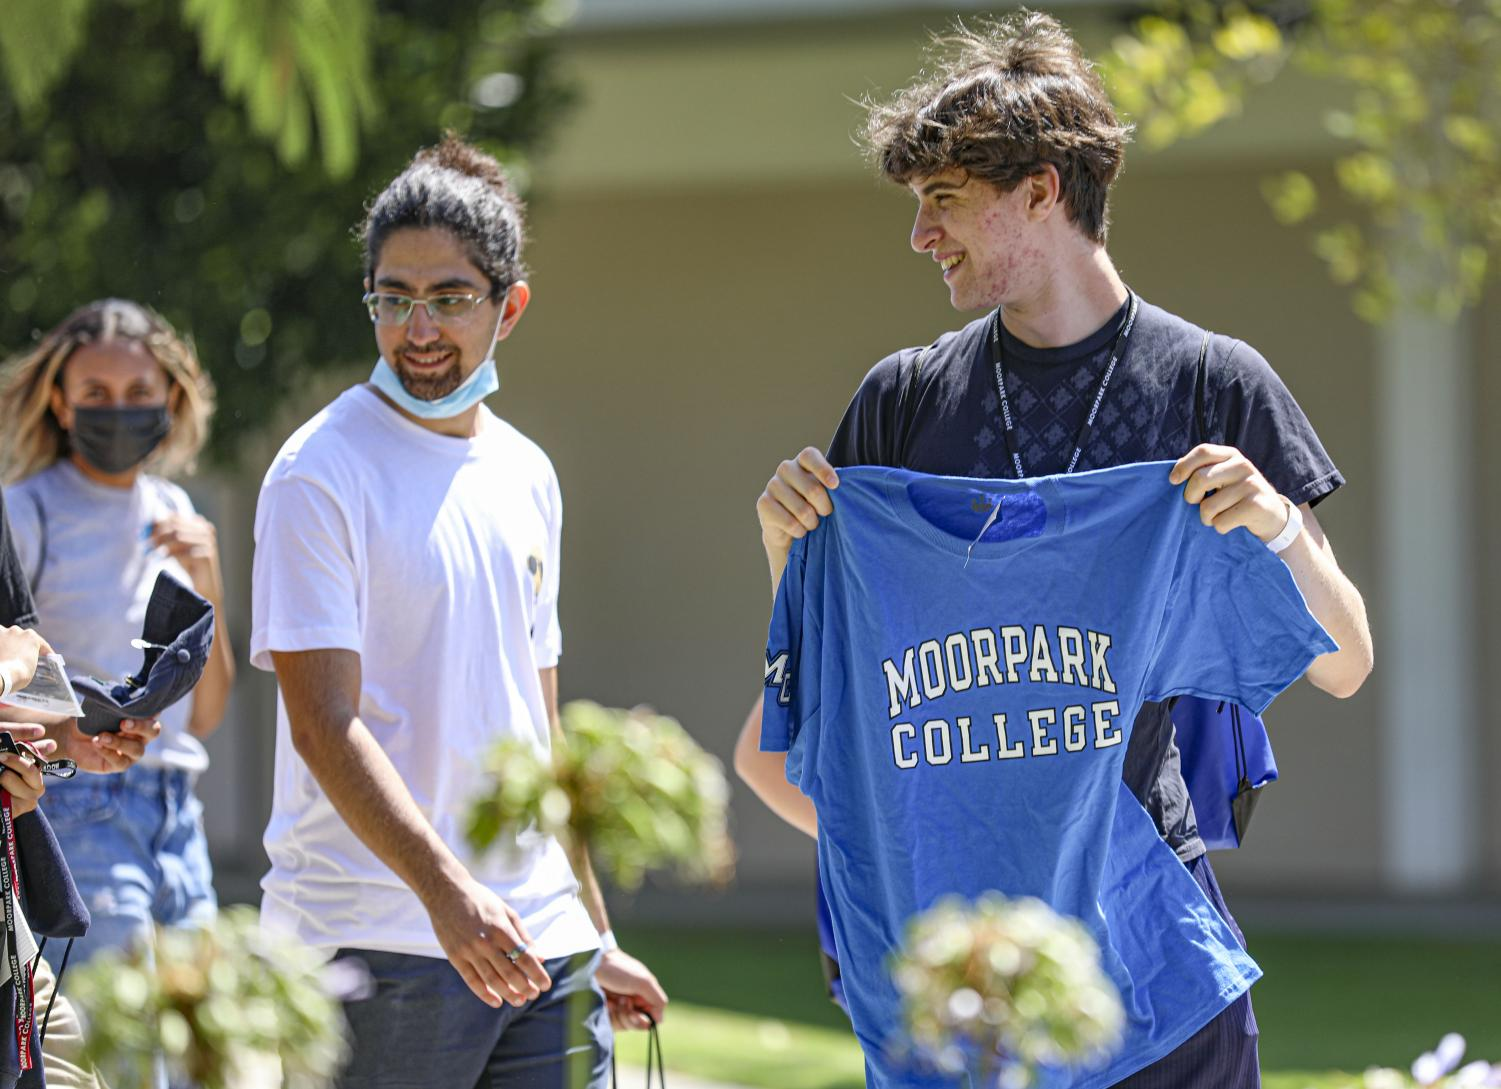 Giovani Long holds up a 'Moorpark College' t-shirt during a guided tour of campus at the New Student Welcome on Monday, Aug. 9, 2021 at Moorpark College, CA.